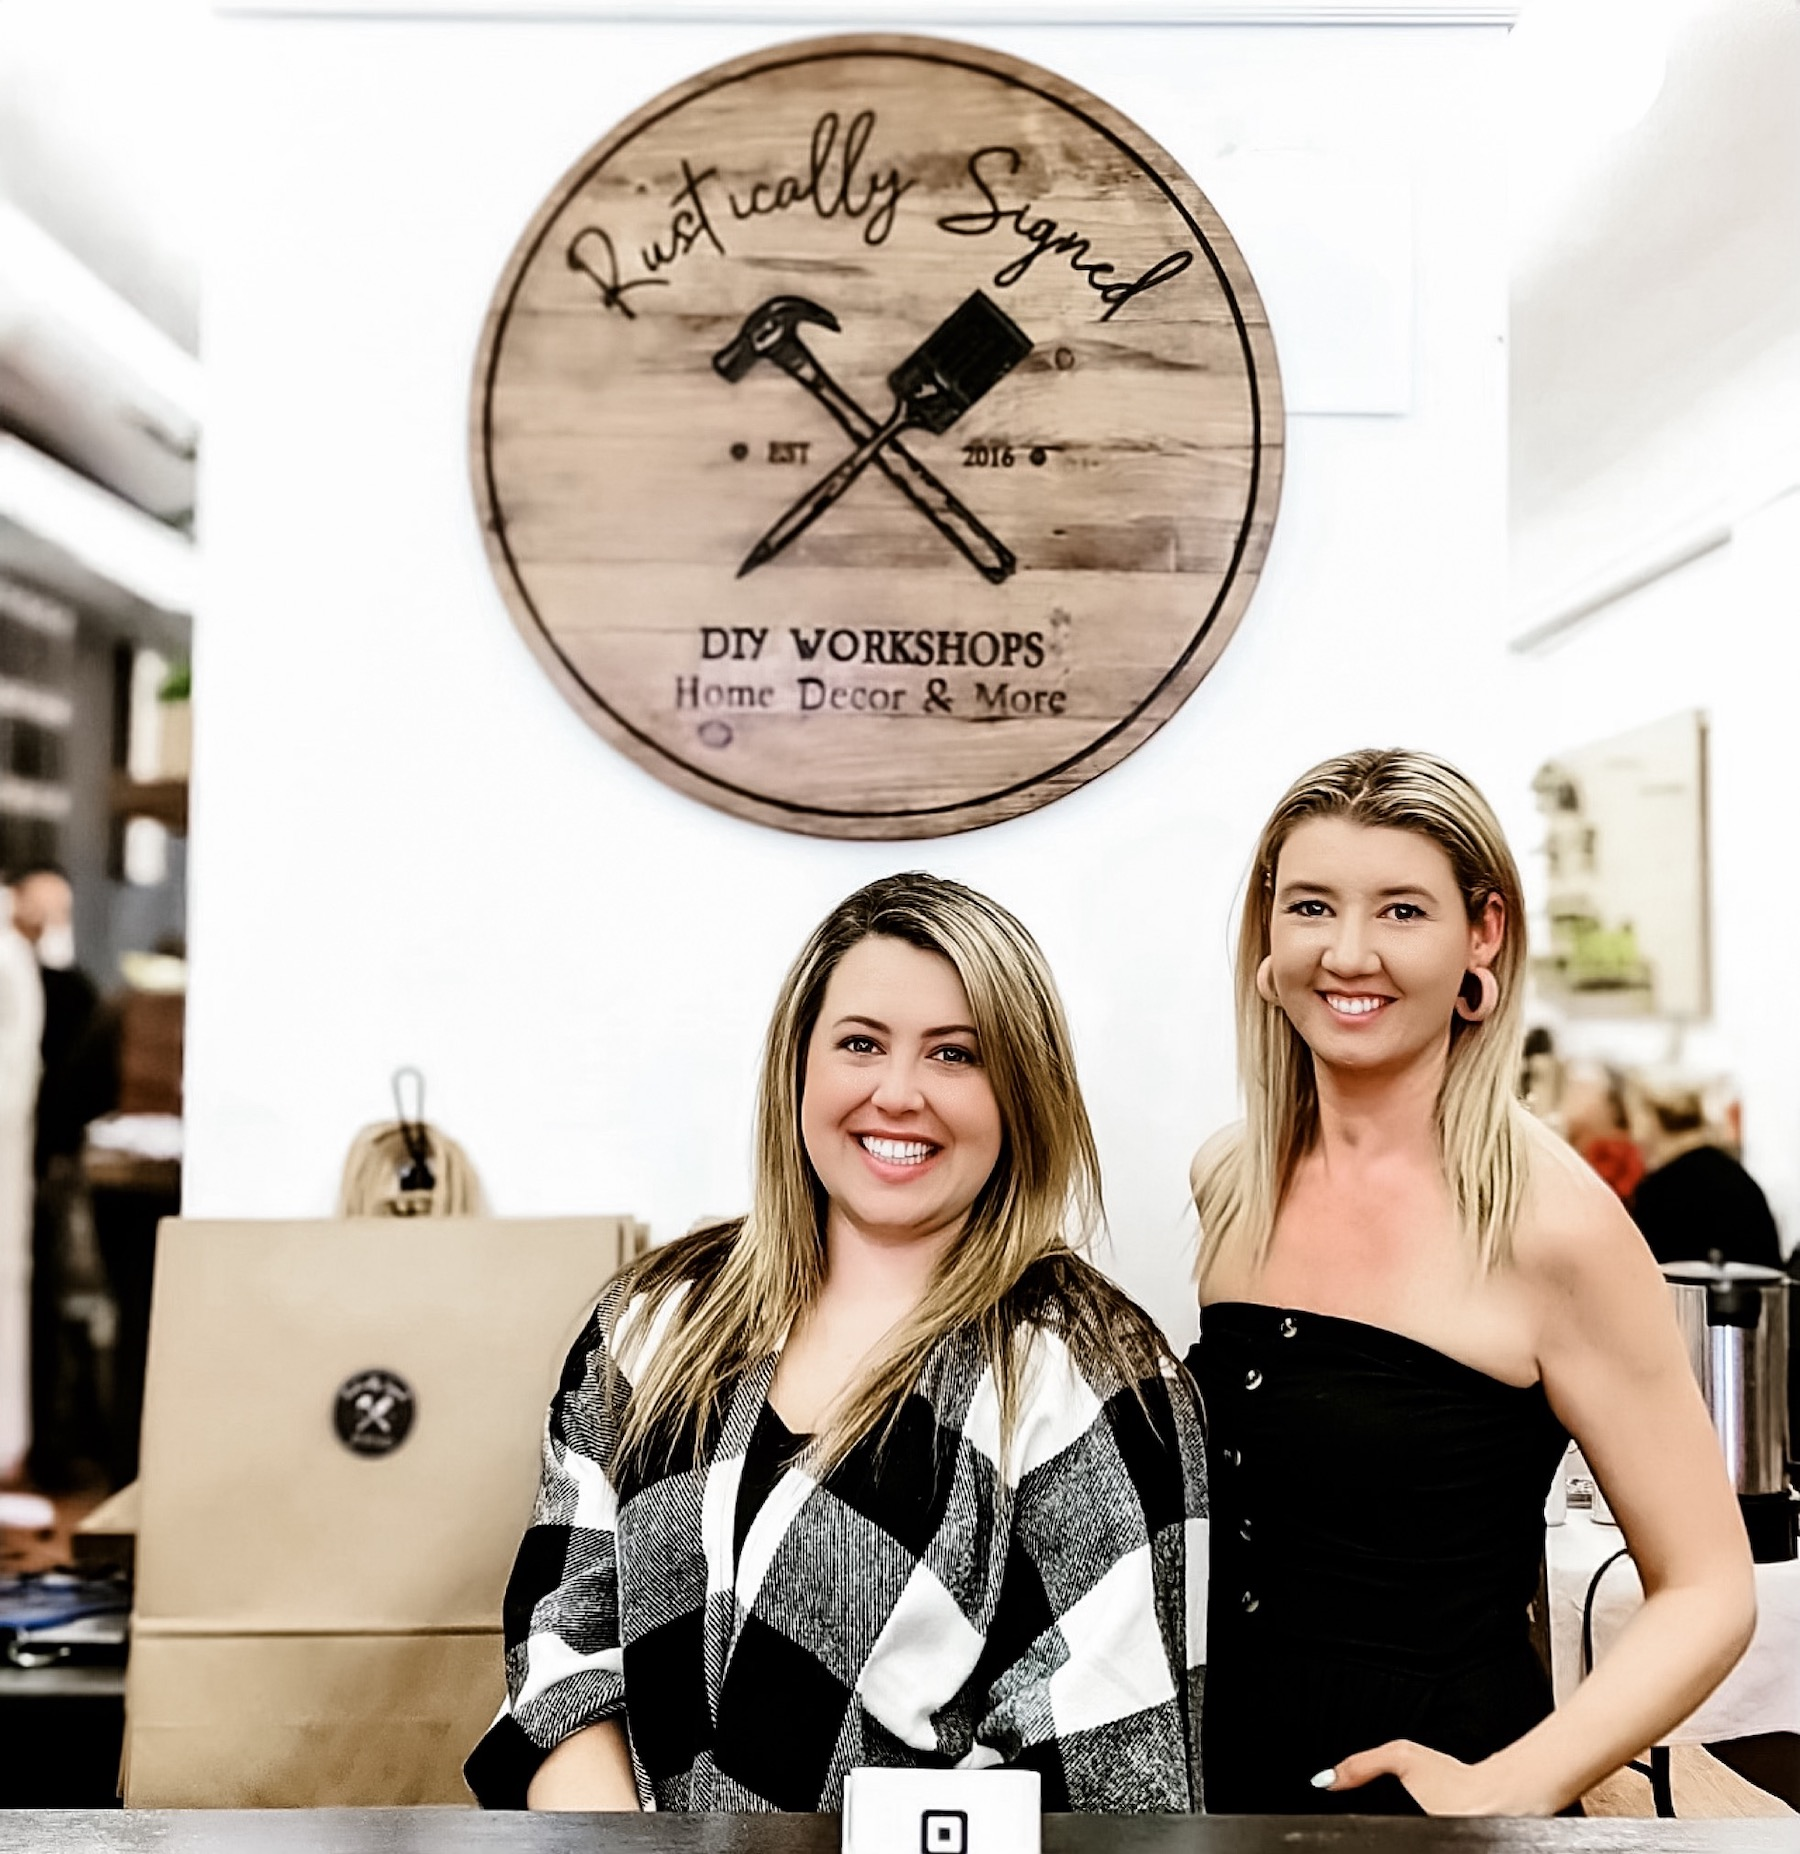 Steph Buckley and Holly Suddick stand at the counter of Rustically Signed